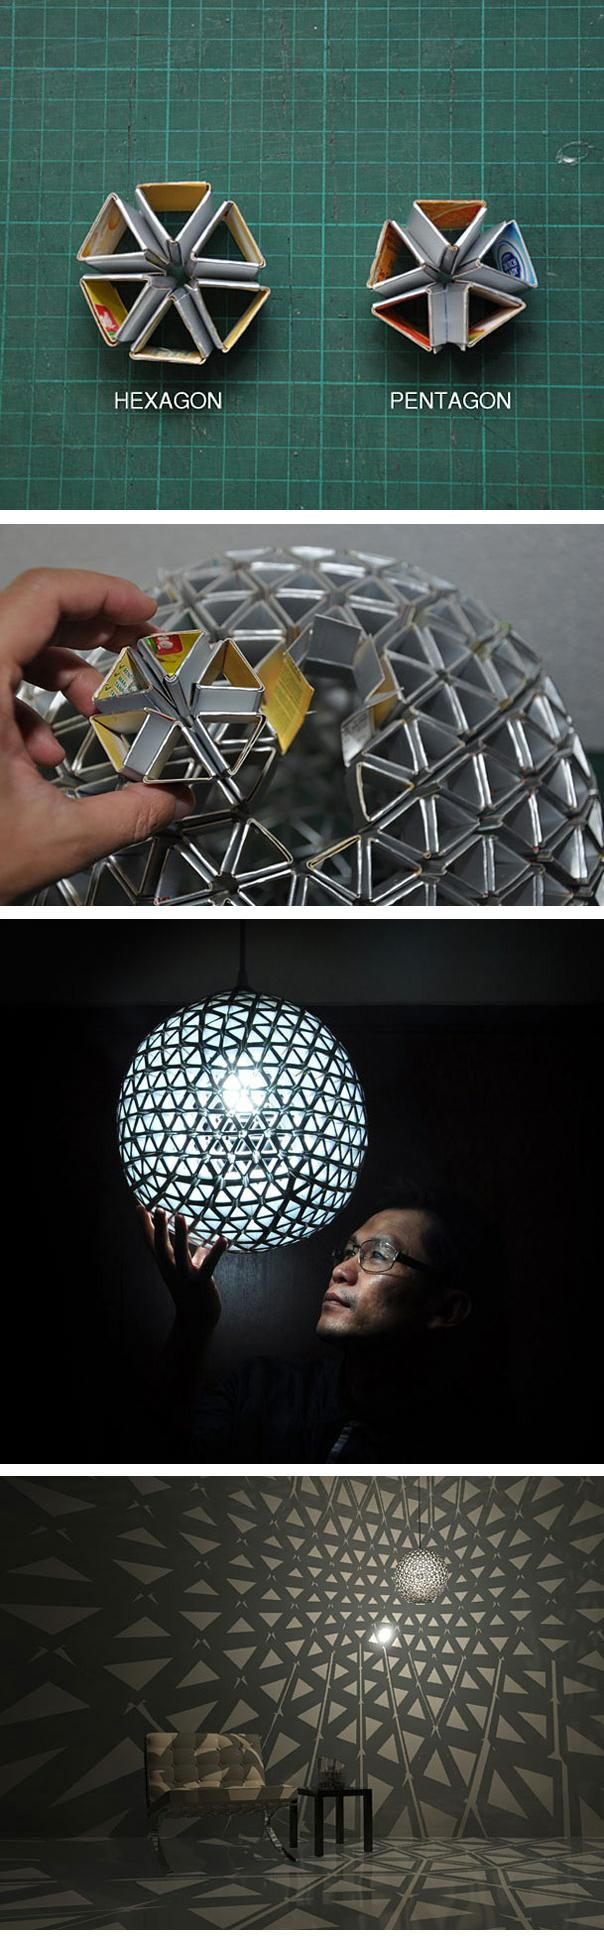 Pretty cool lamp, as long as it doesn't catch fire (the hexagons and pentagons are cardboard).: Squares Size, Discos Ball, Diy Lights, Diy Cardboard, Cardboard Lamps, Awesome Cardboard, Cardboard Art, Diy Beautiful, Beautiful Cardboard